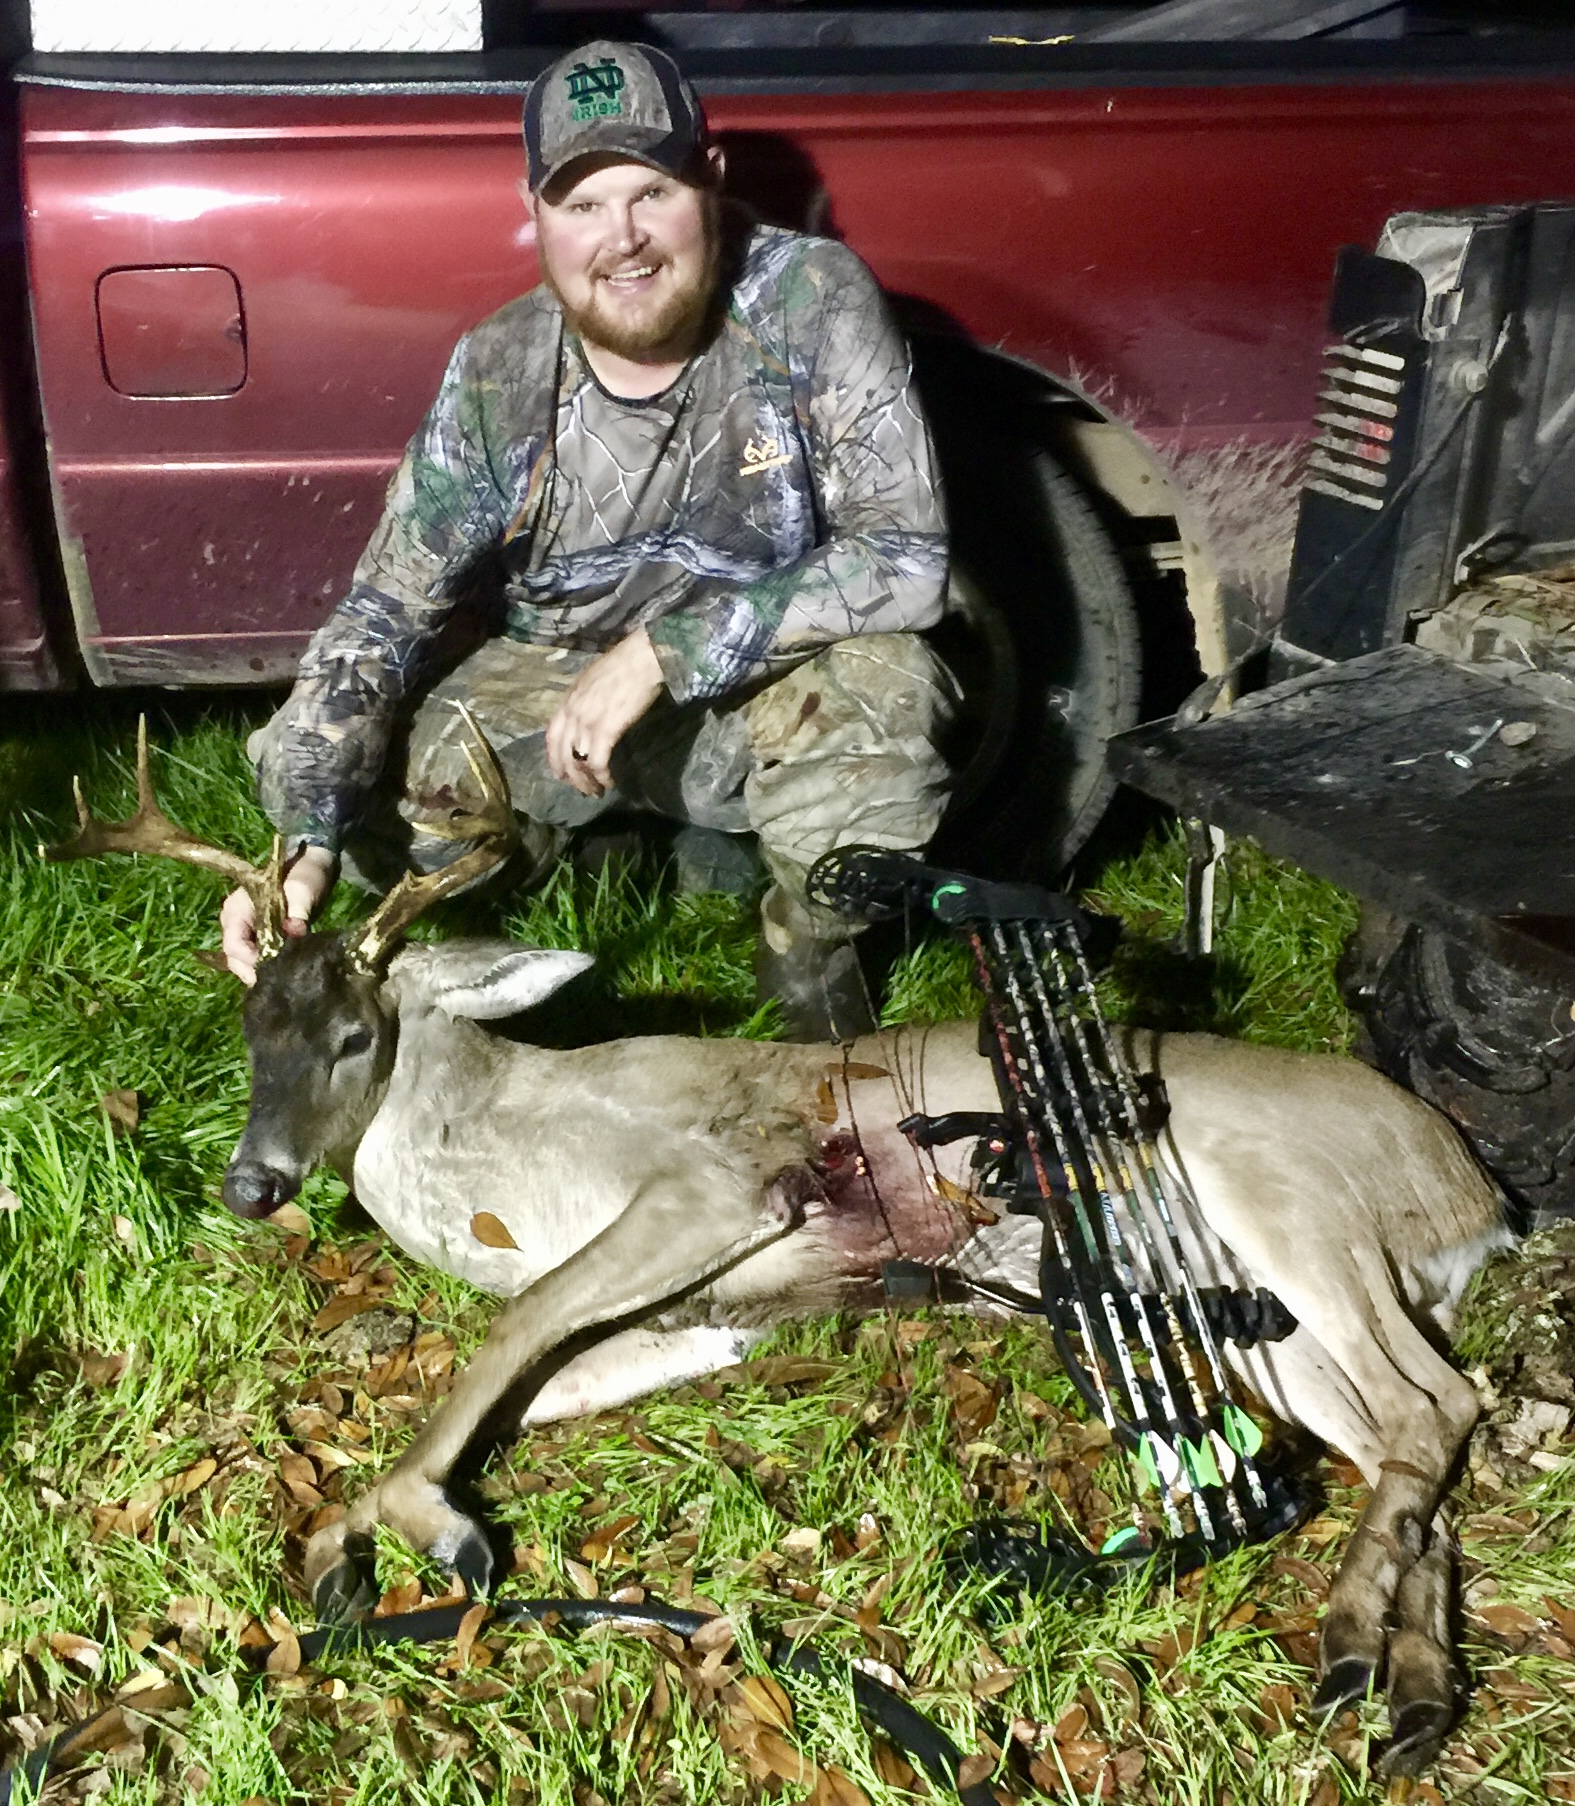 Willard Davis Jr. of Milton was fishing private land near the Yellow River management area when he nabbed this whitetail Feb. 23. The 8-point swamp buck weighed 142 pounds with a 15.5-inch inside spread. The kill is his biggest Florida deer to date.